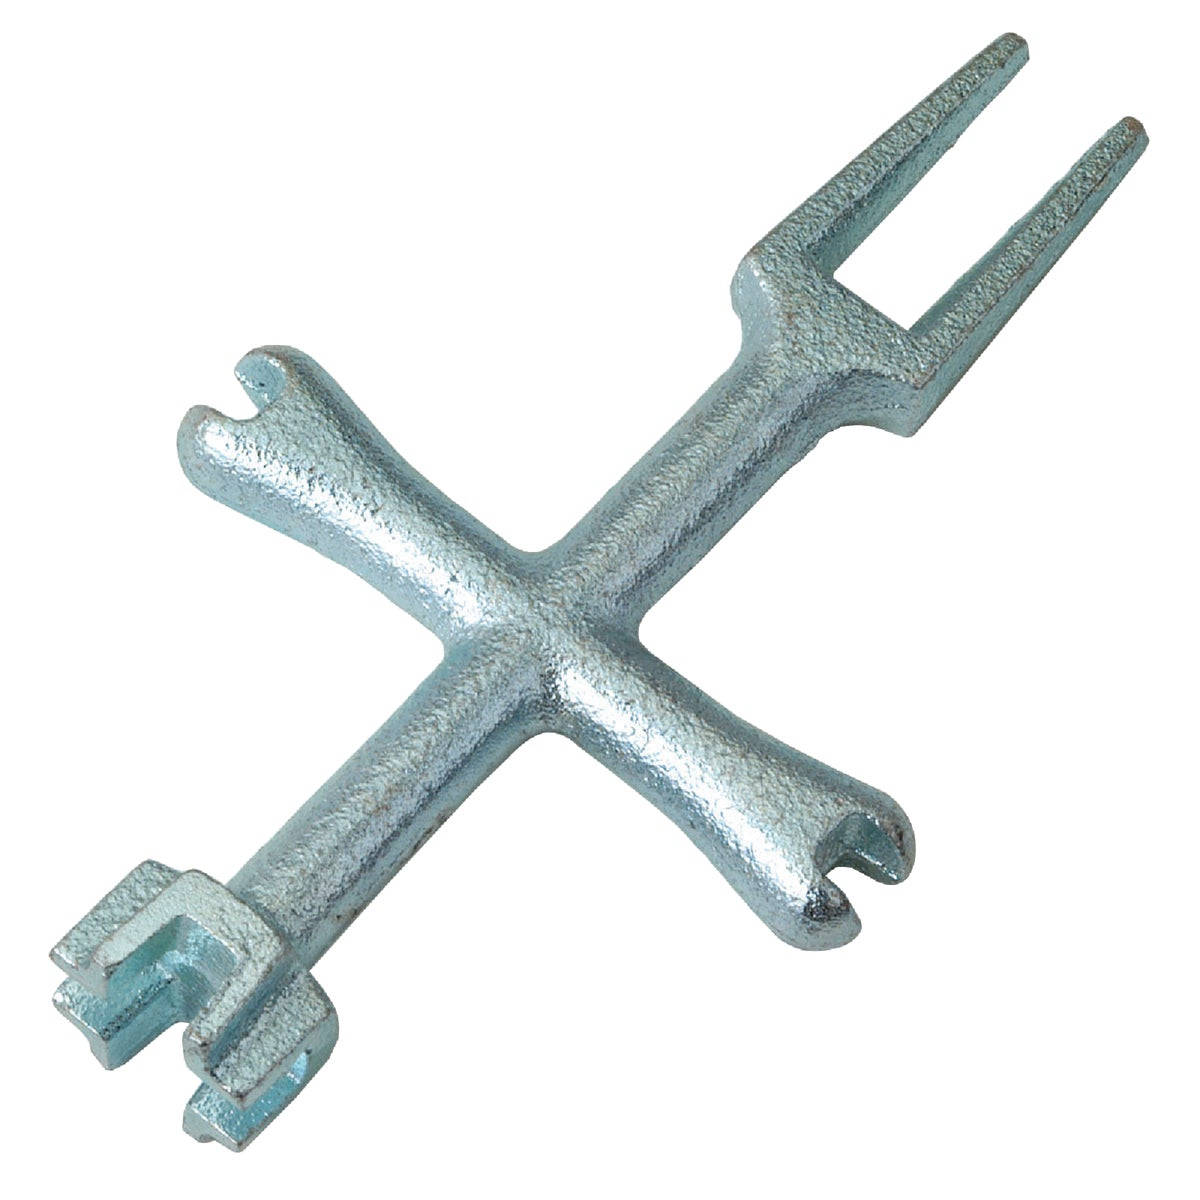 POPUP PLUG WRENCH